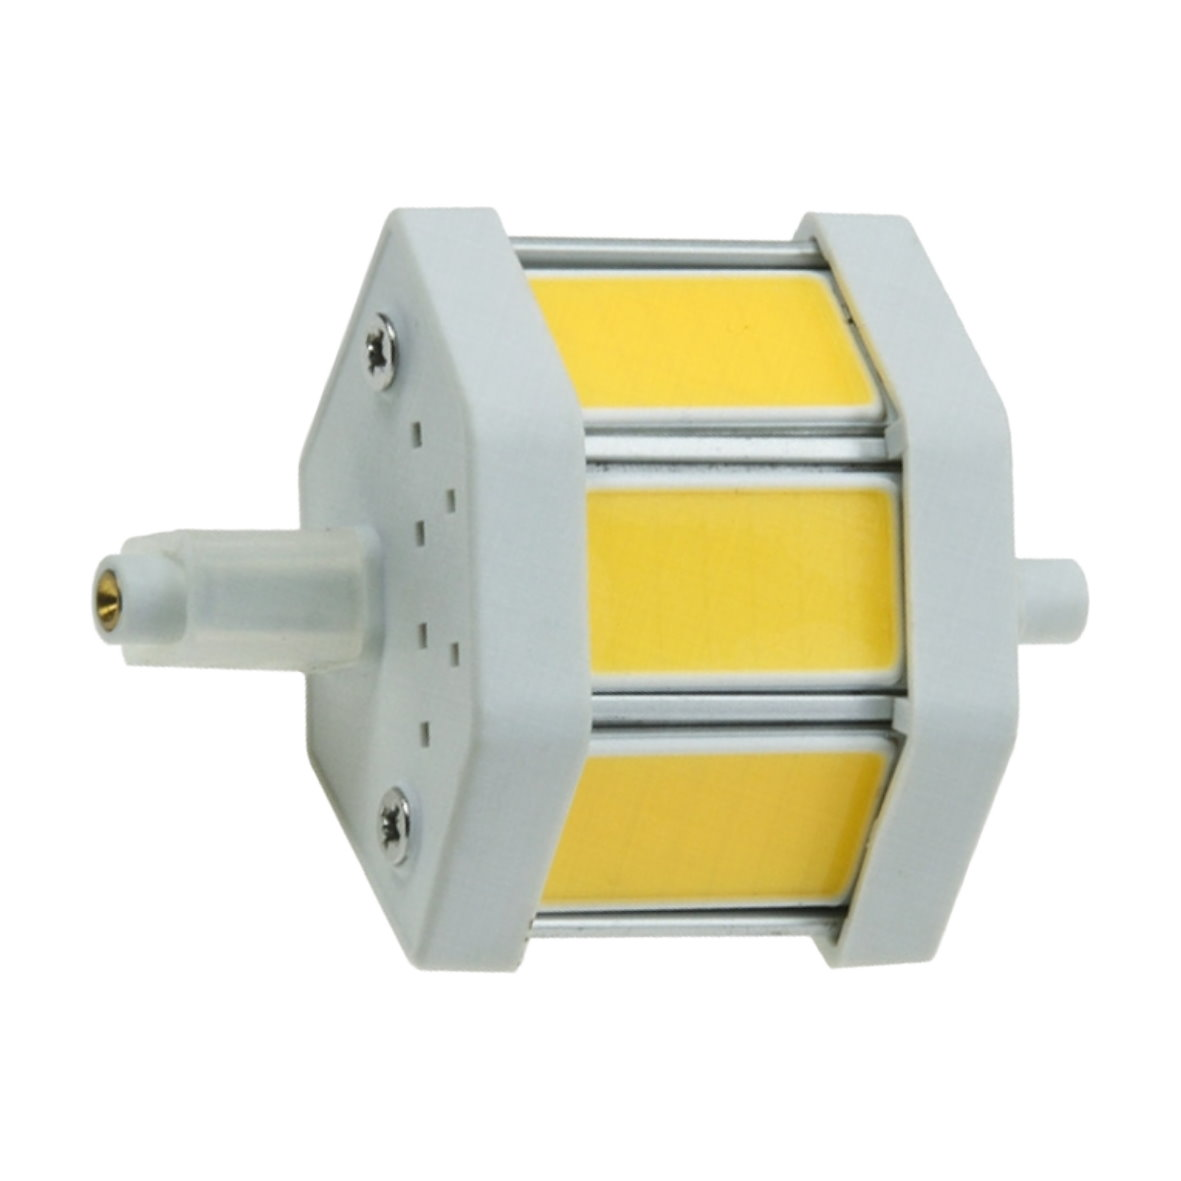 led leuchtmittel cob r7s dimmbar dimmable 78 118 mm deckenfluter halogen stab ebay. Black Bedroom Furniture Sets. Home Design Ideas